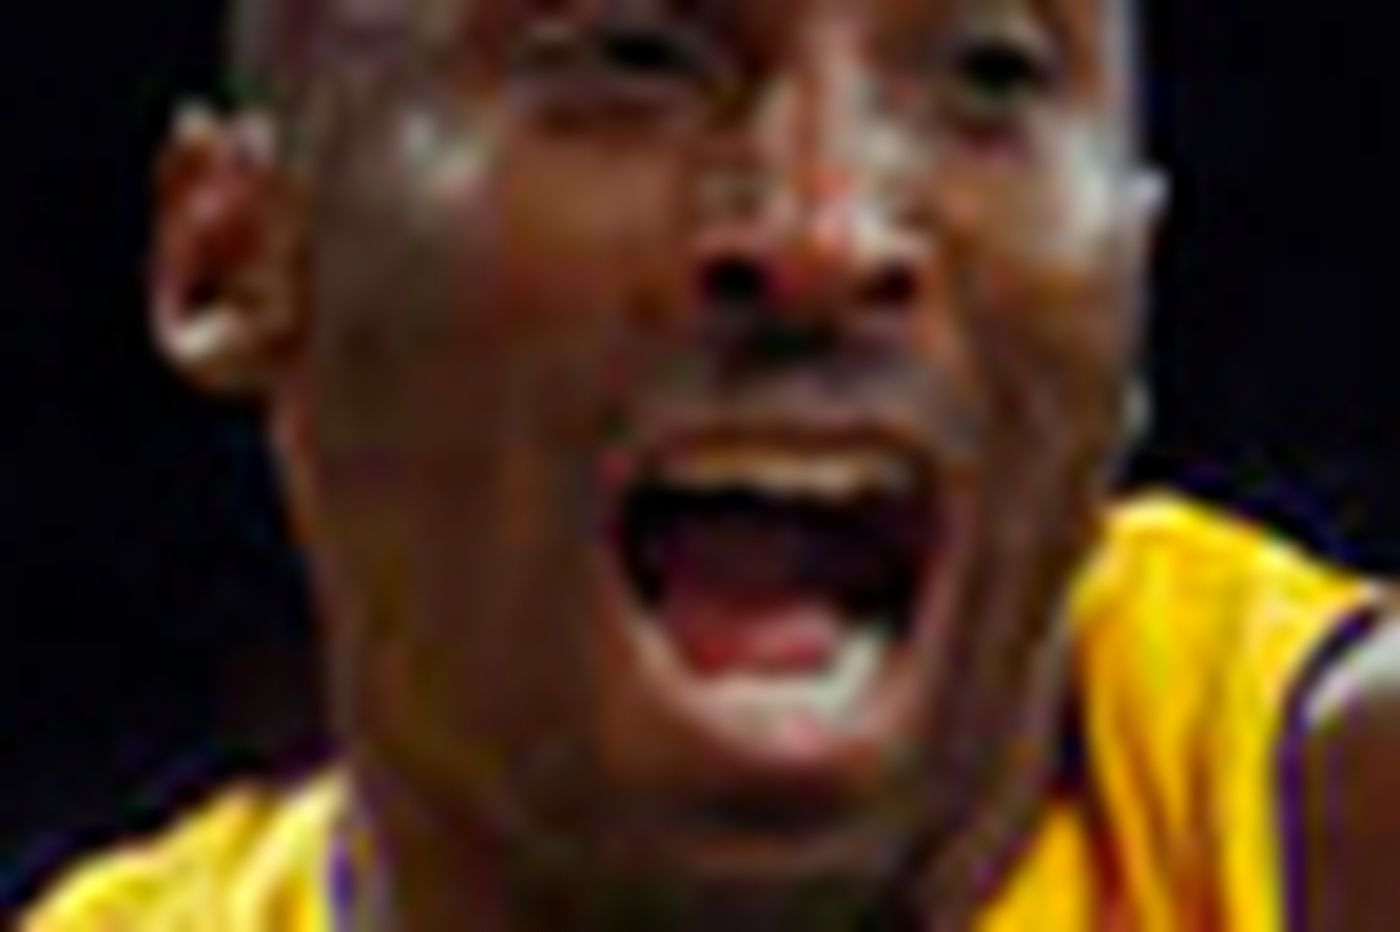 School gym to be named after Kobe Bryant